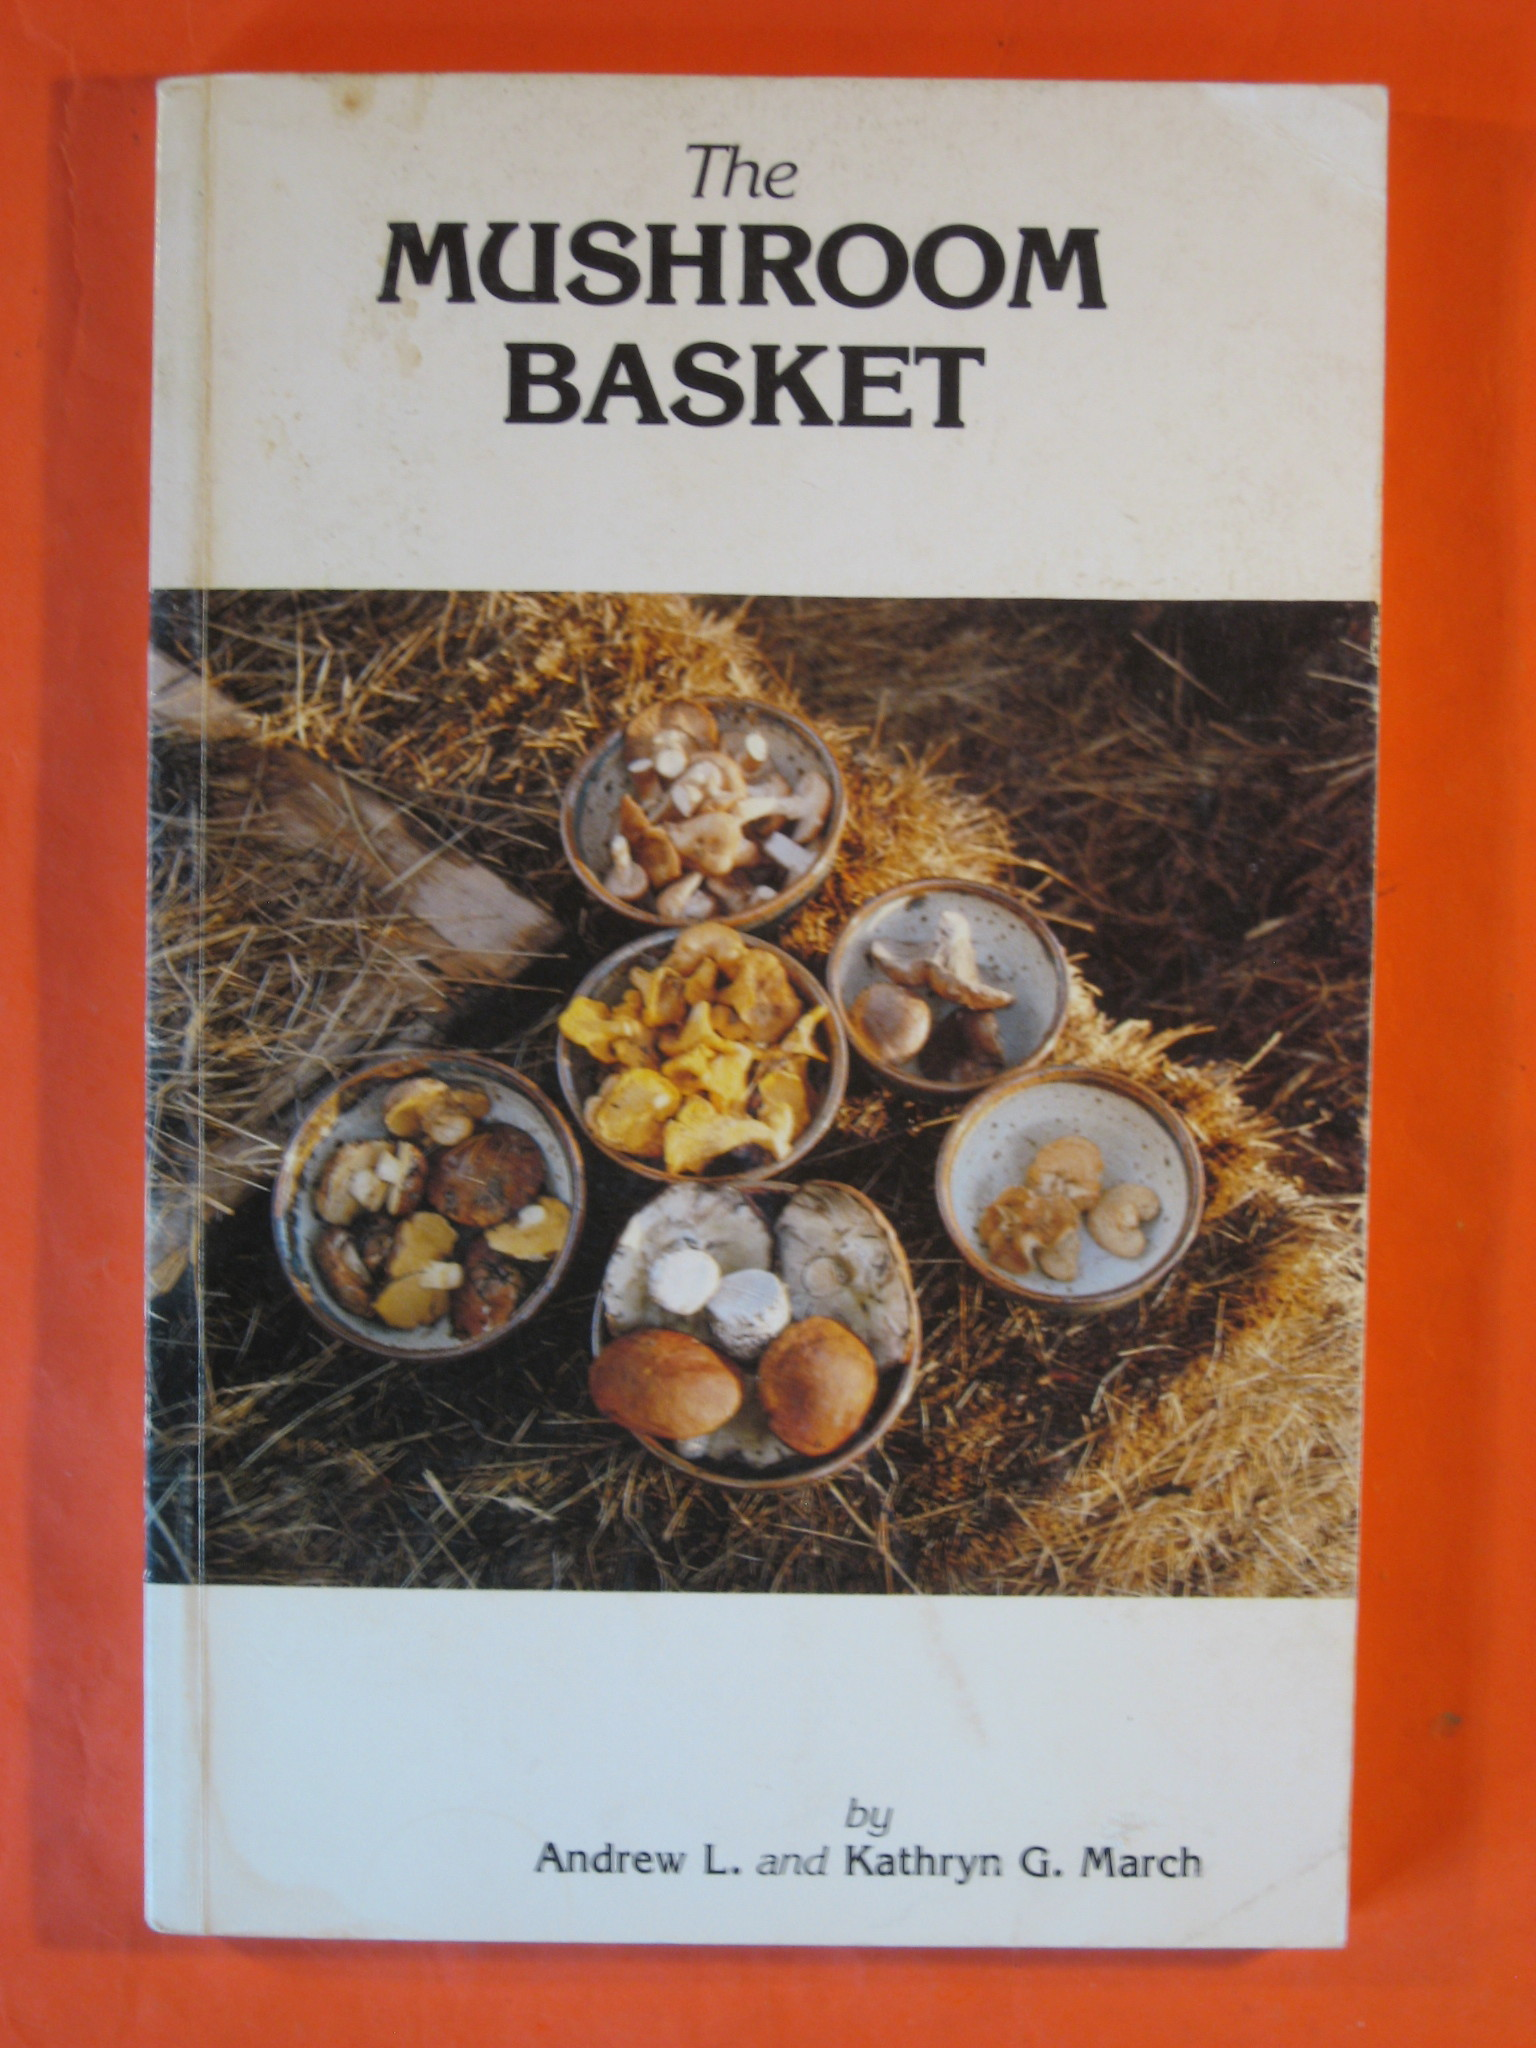 Mushroom Basket: A Gourmet Introduction to the Best Common Mushrooms of the Southern Rocky Mountains, With Applications Throughout the Northern Hemi, March, Kathryn